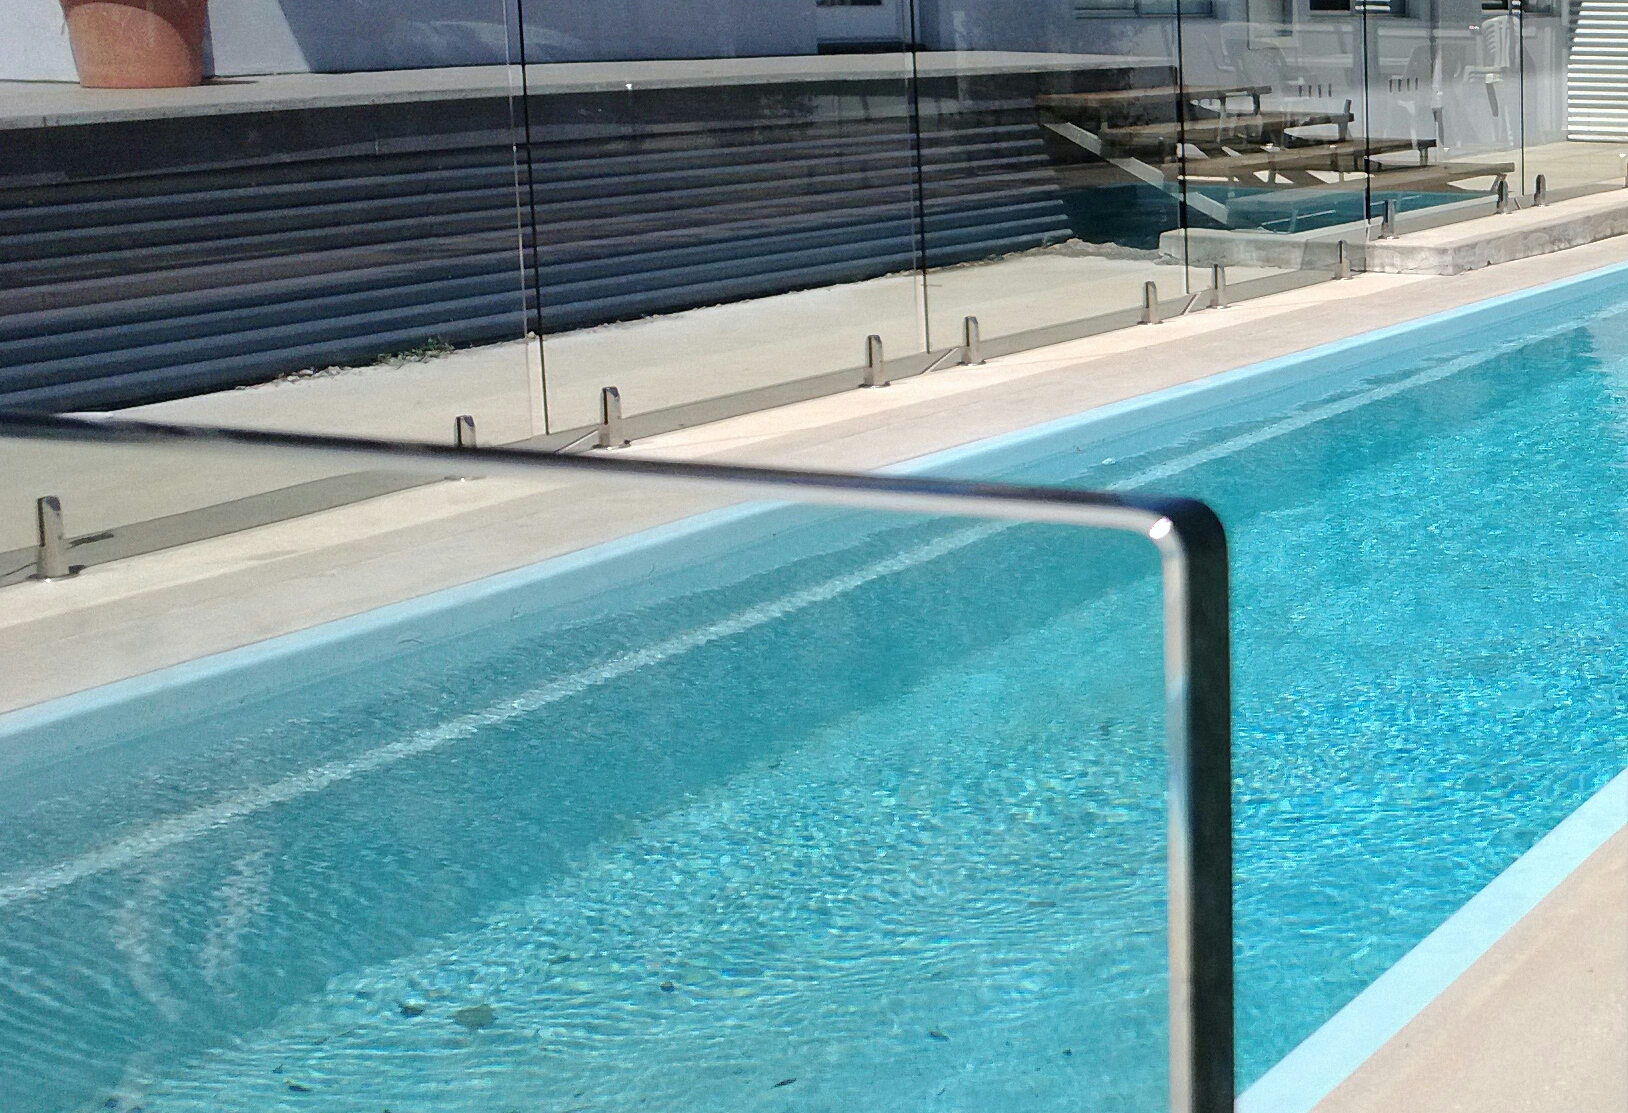 1350wx1200hx12mm Frameless Glass Pool Fence Panel A Grade Quality Australian Standards Pass Mark Clear Toughened Polished Edges And Corners Fence Guru Online Fence Shop